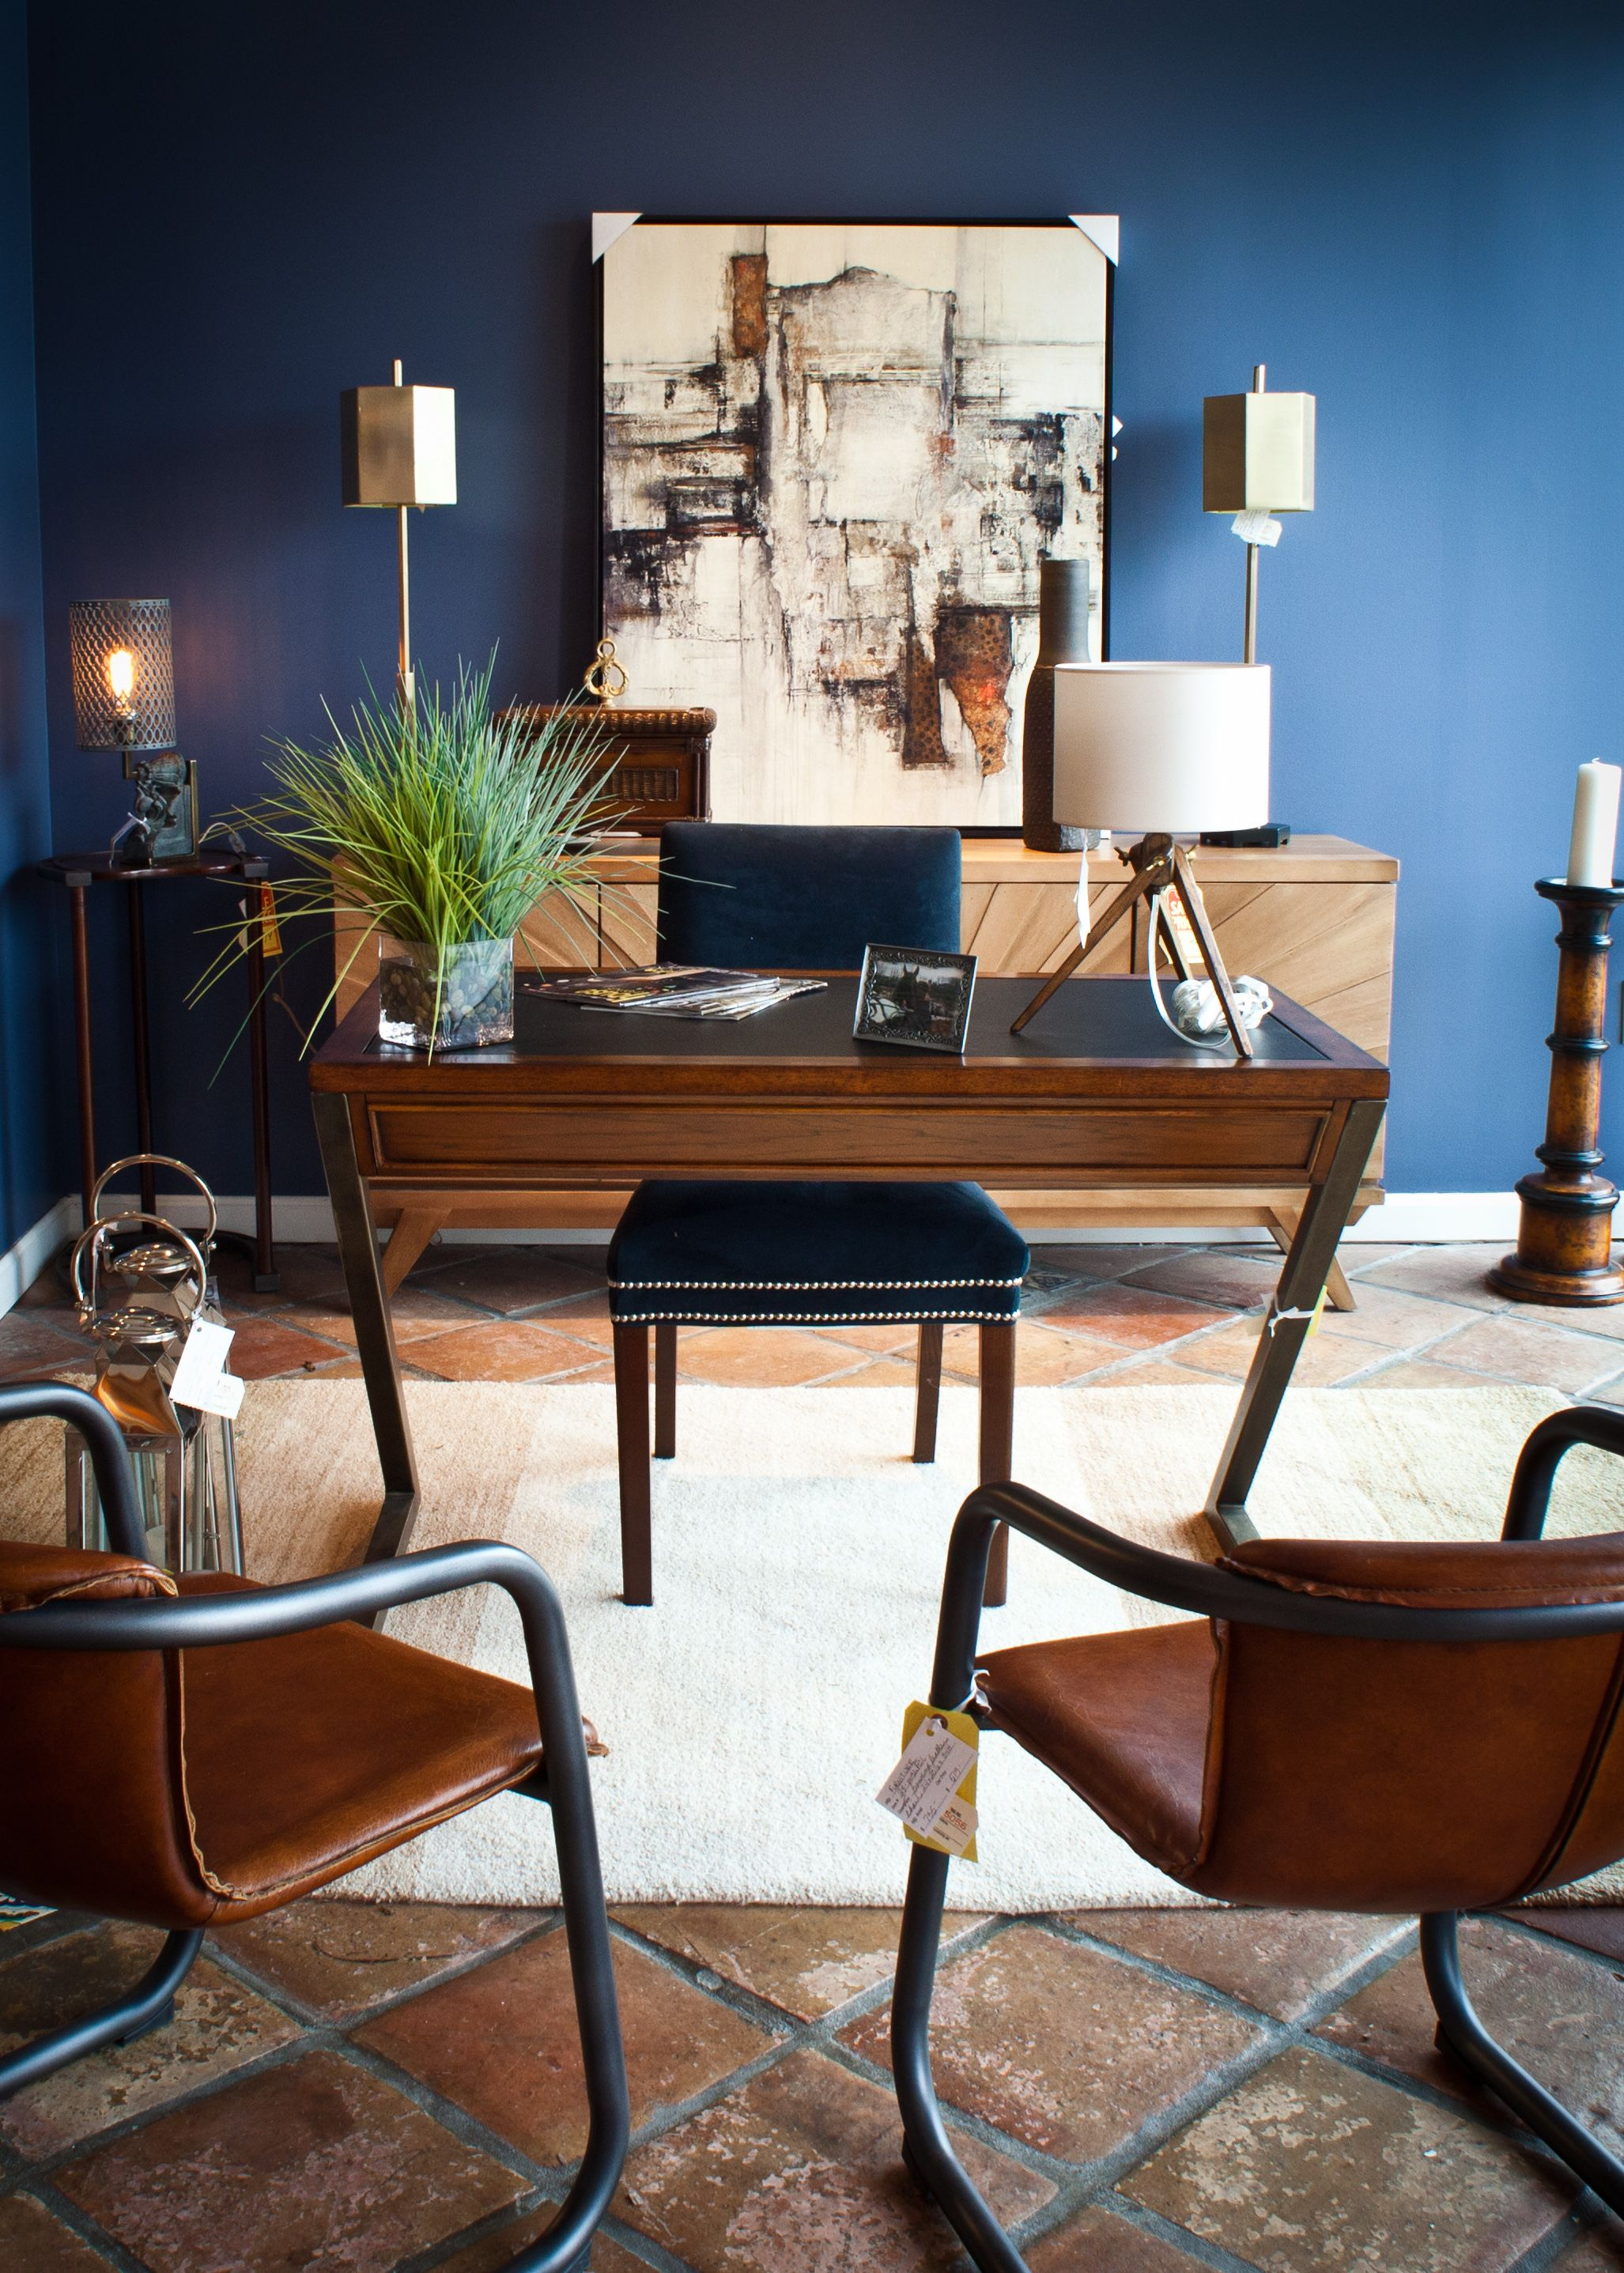 Modern Home Office With Blue Accent Wall At Hoffman Albers Interior Design Showroom In Blue Ash Cincinnati Ohio Modern Home Office Home Blue Accent Walls